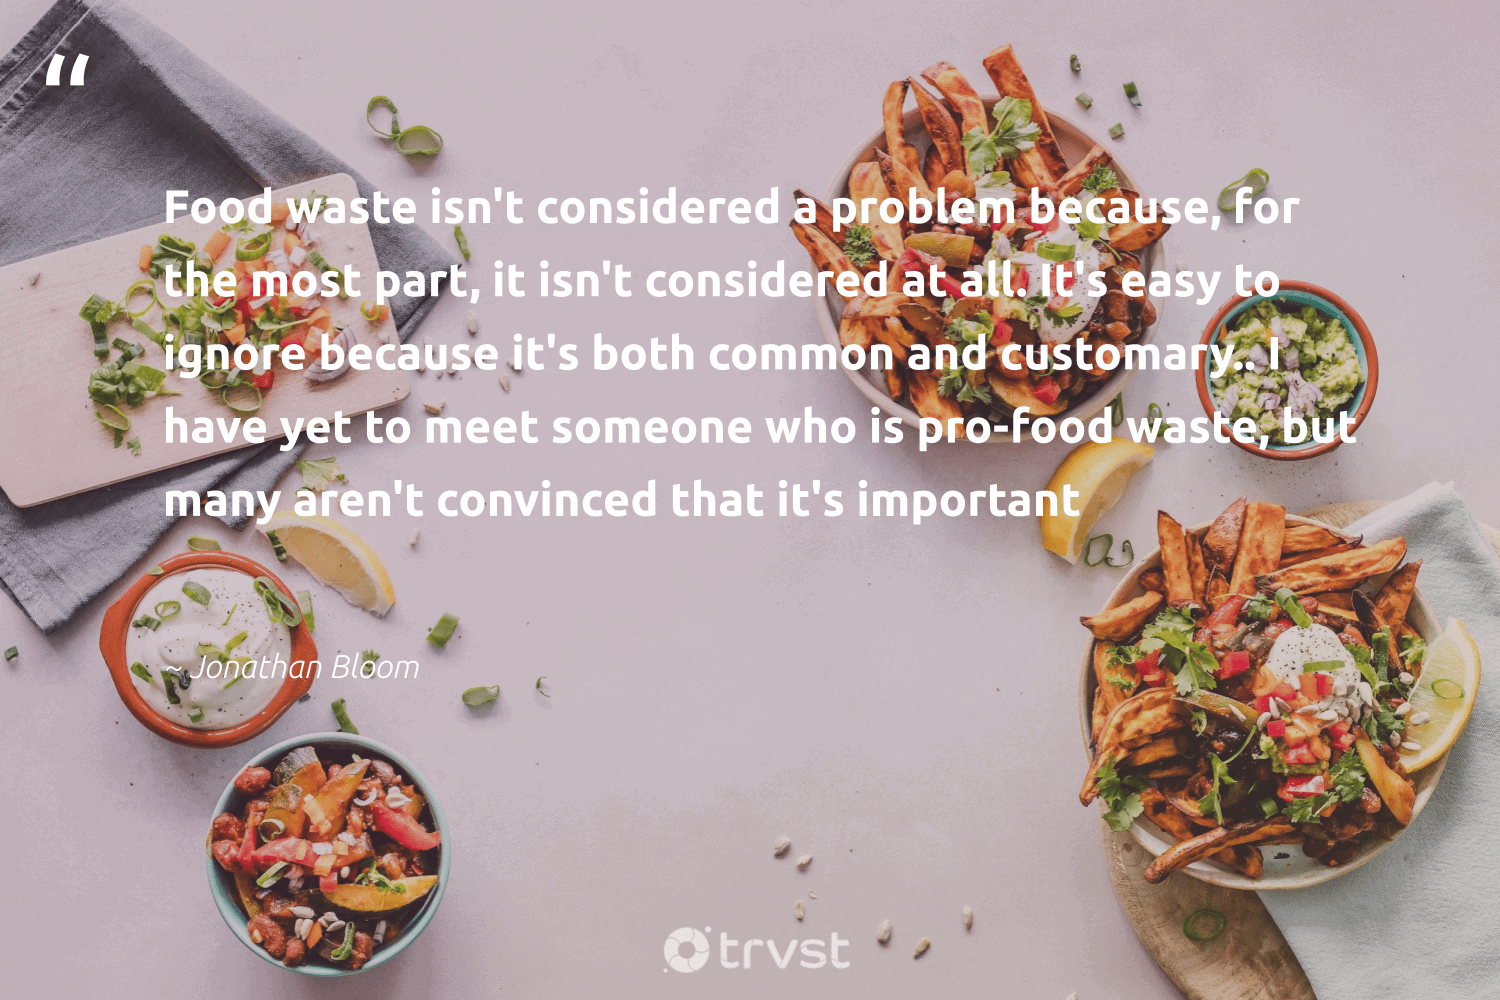 """""""Food waste isn't considered a problem because, for the most part, it isn't considered at all. It's easy to ignore because it's both common and customary.. I have yet to meet someone who is pro-food waste, but many aren't convinced that it's important""""  - Jonathan Bloom #trvst #quotes #foodwaste #waste #food #wastefood #plantbased #earthdayeveryday #bethechange #savefood #environmentallyfriendly #sustainableliving"""